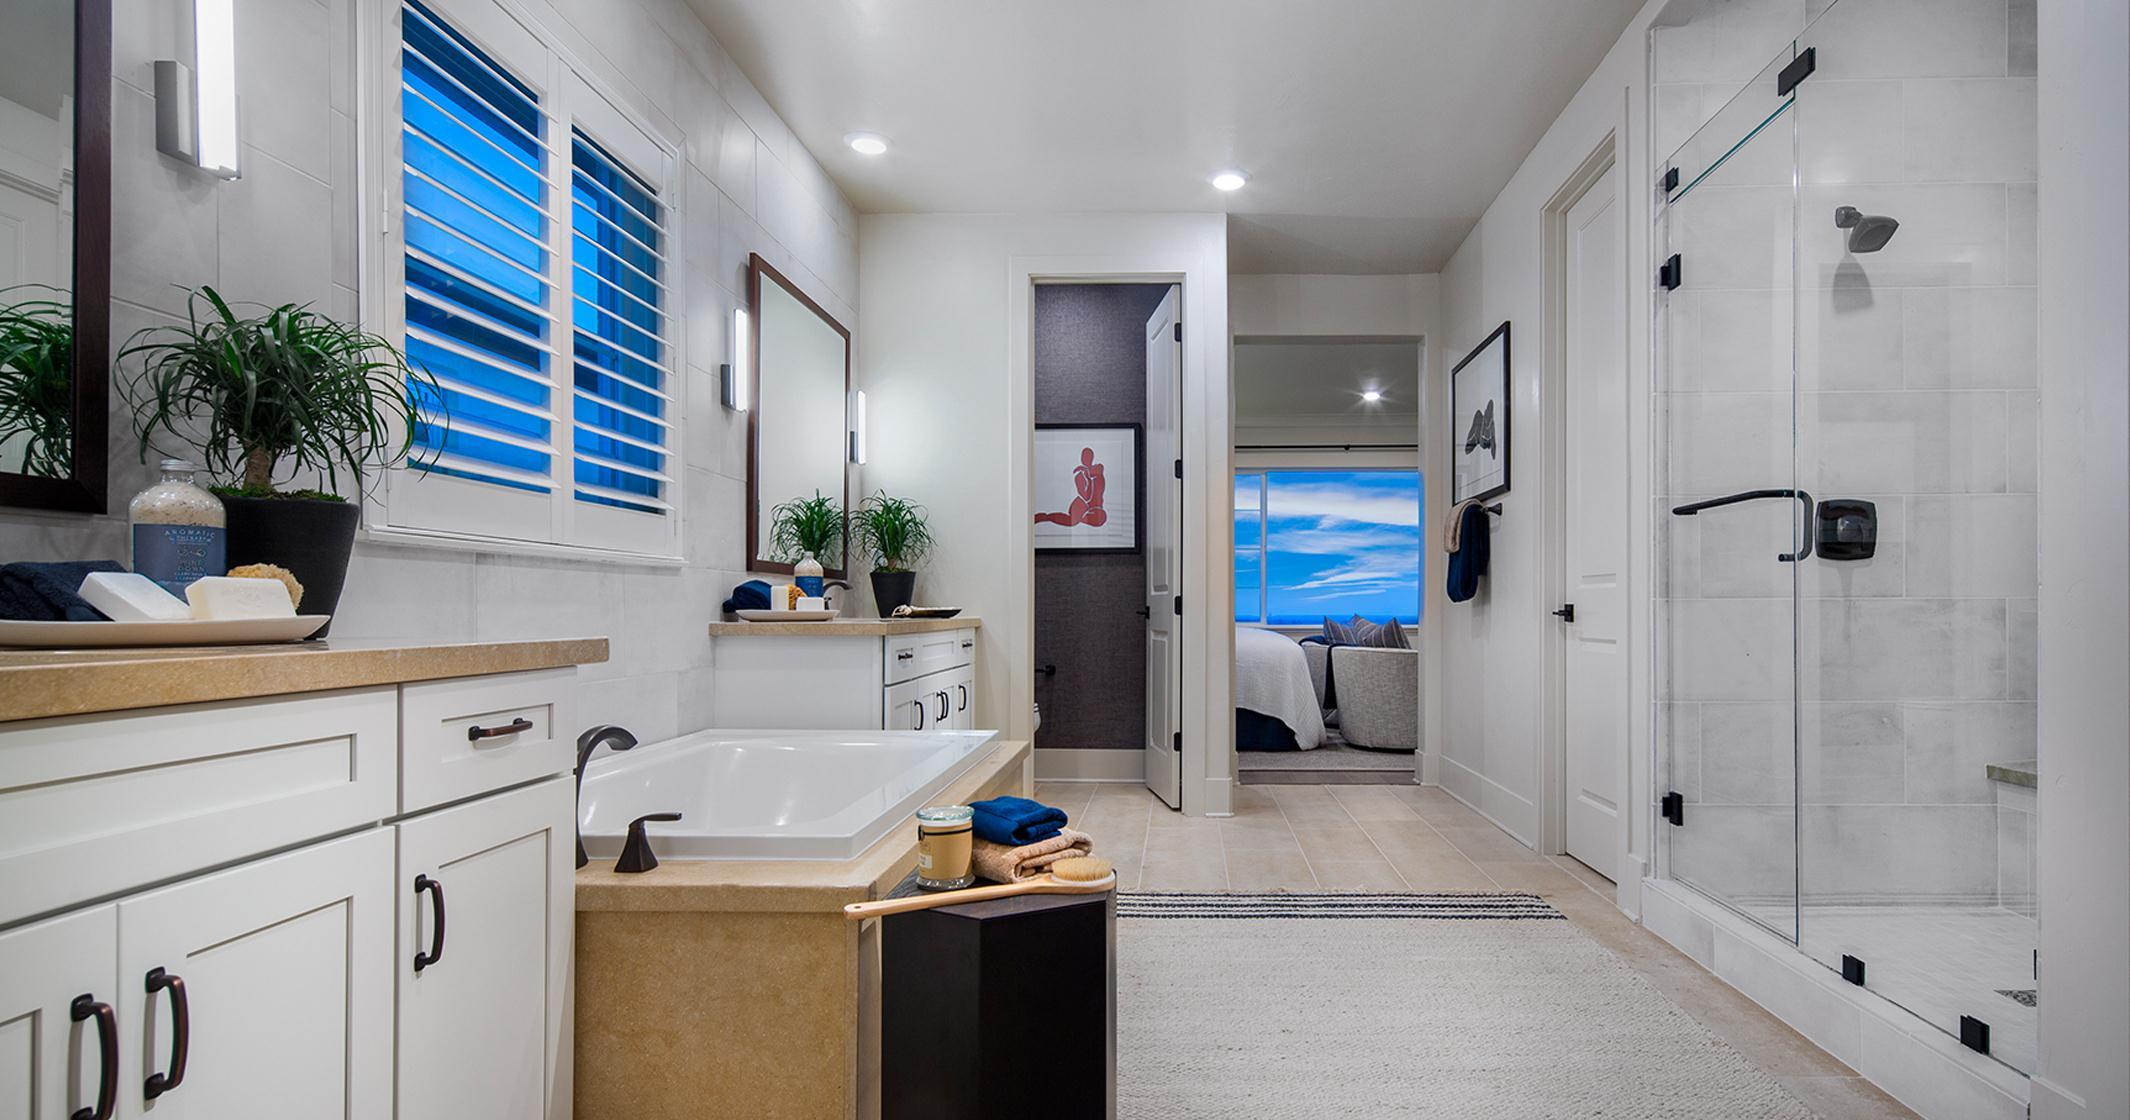 Bathroom featured in the Plan 4 By The New Home Company in Sacramento, CA